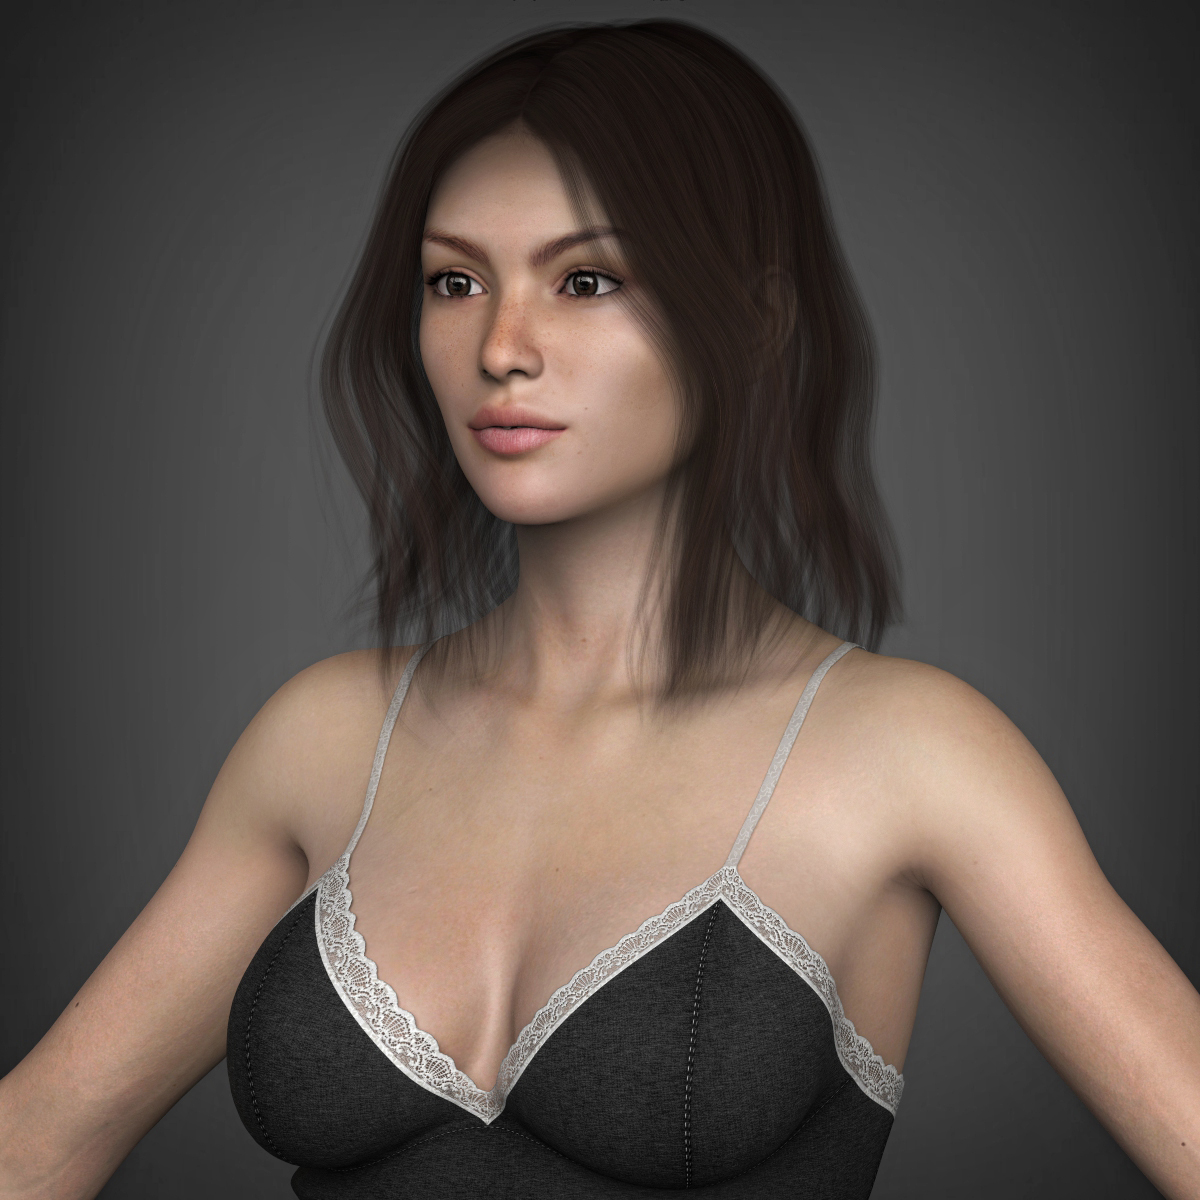 young beautiful woman 3d model max fbx c4d ma mb texture obj 223023